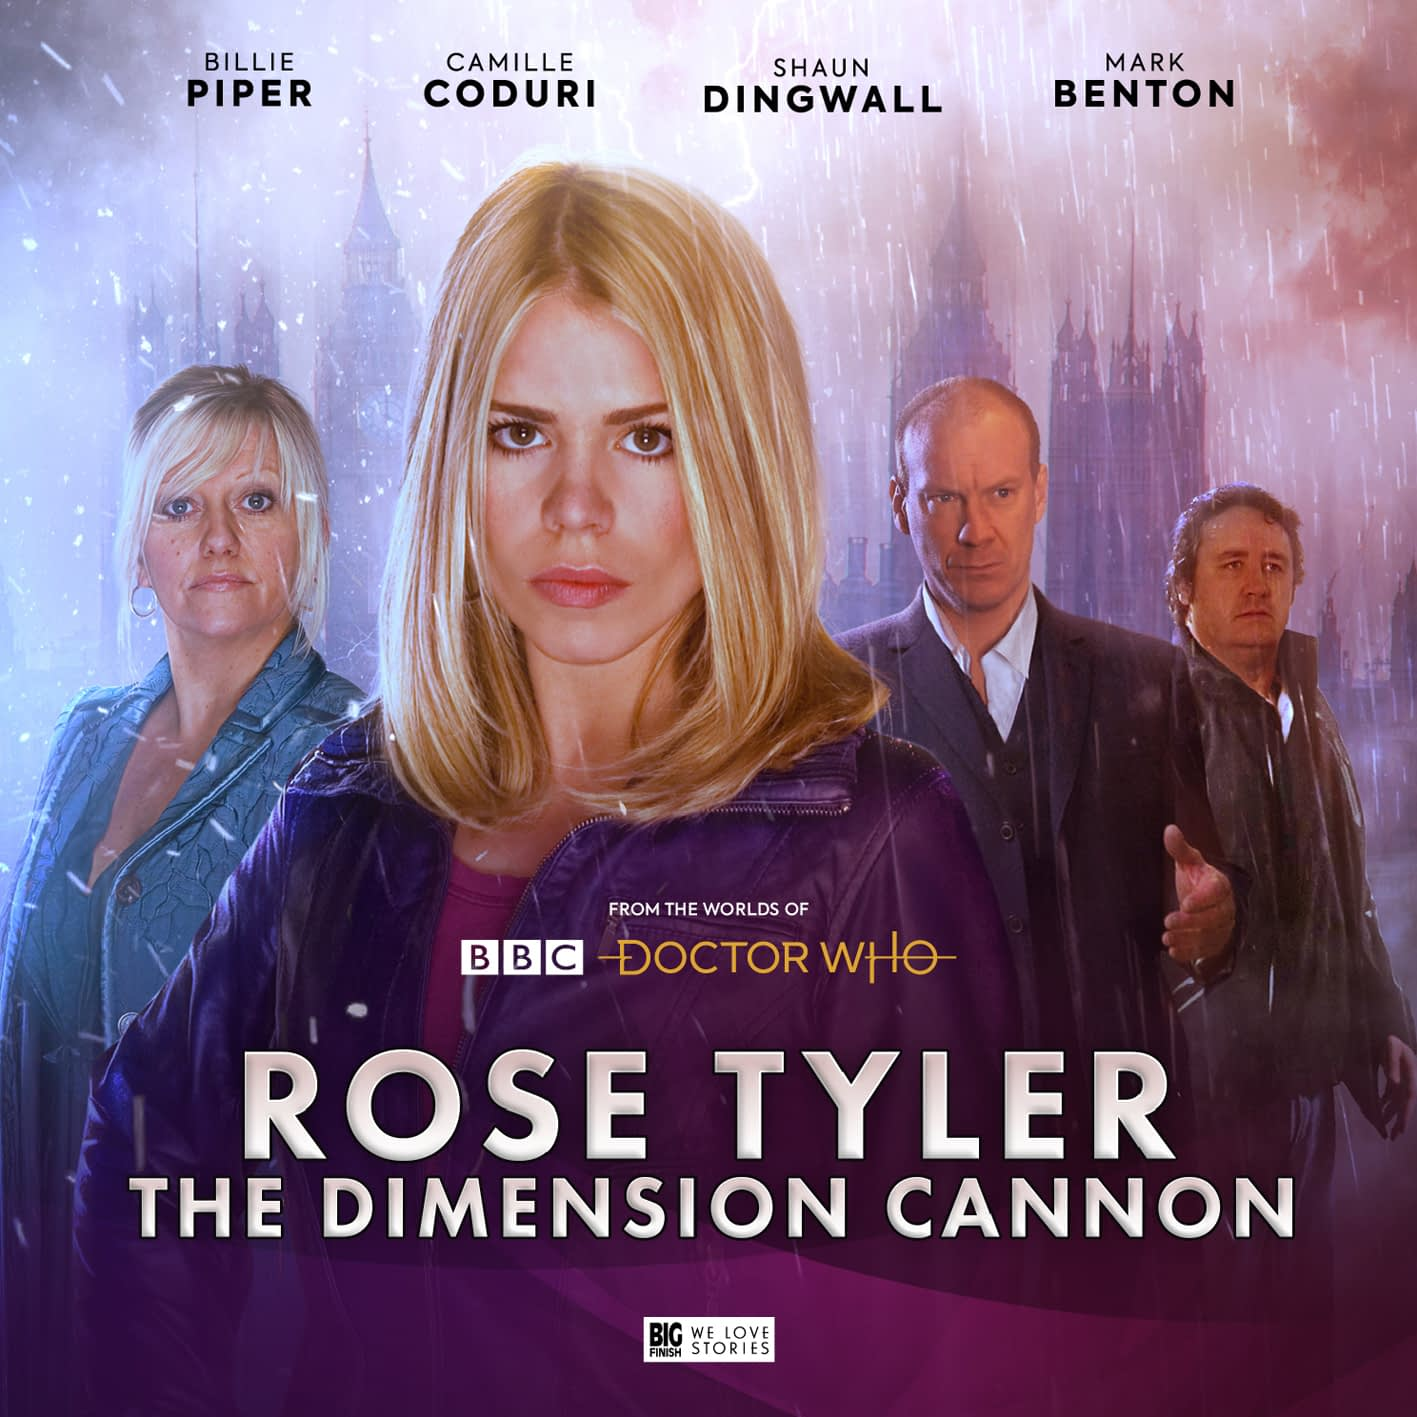 """Billie Piper and Co. Shine in """"Doctor Who"""" Spinoff [Review]"""